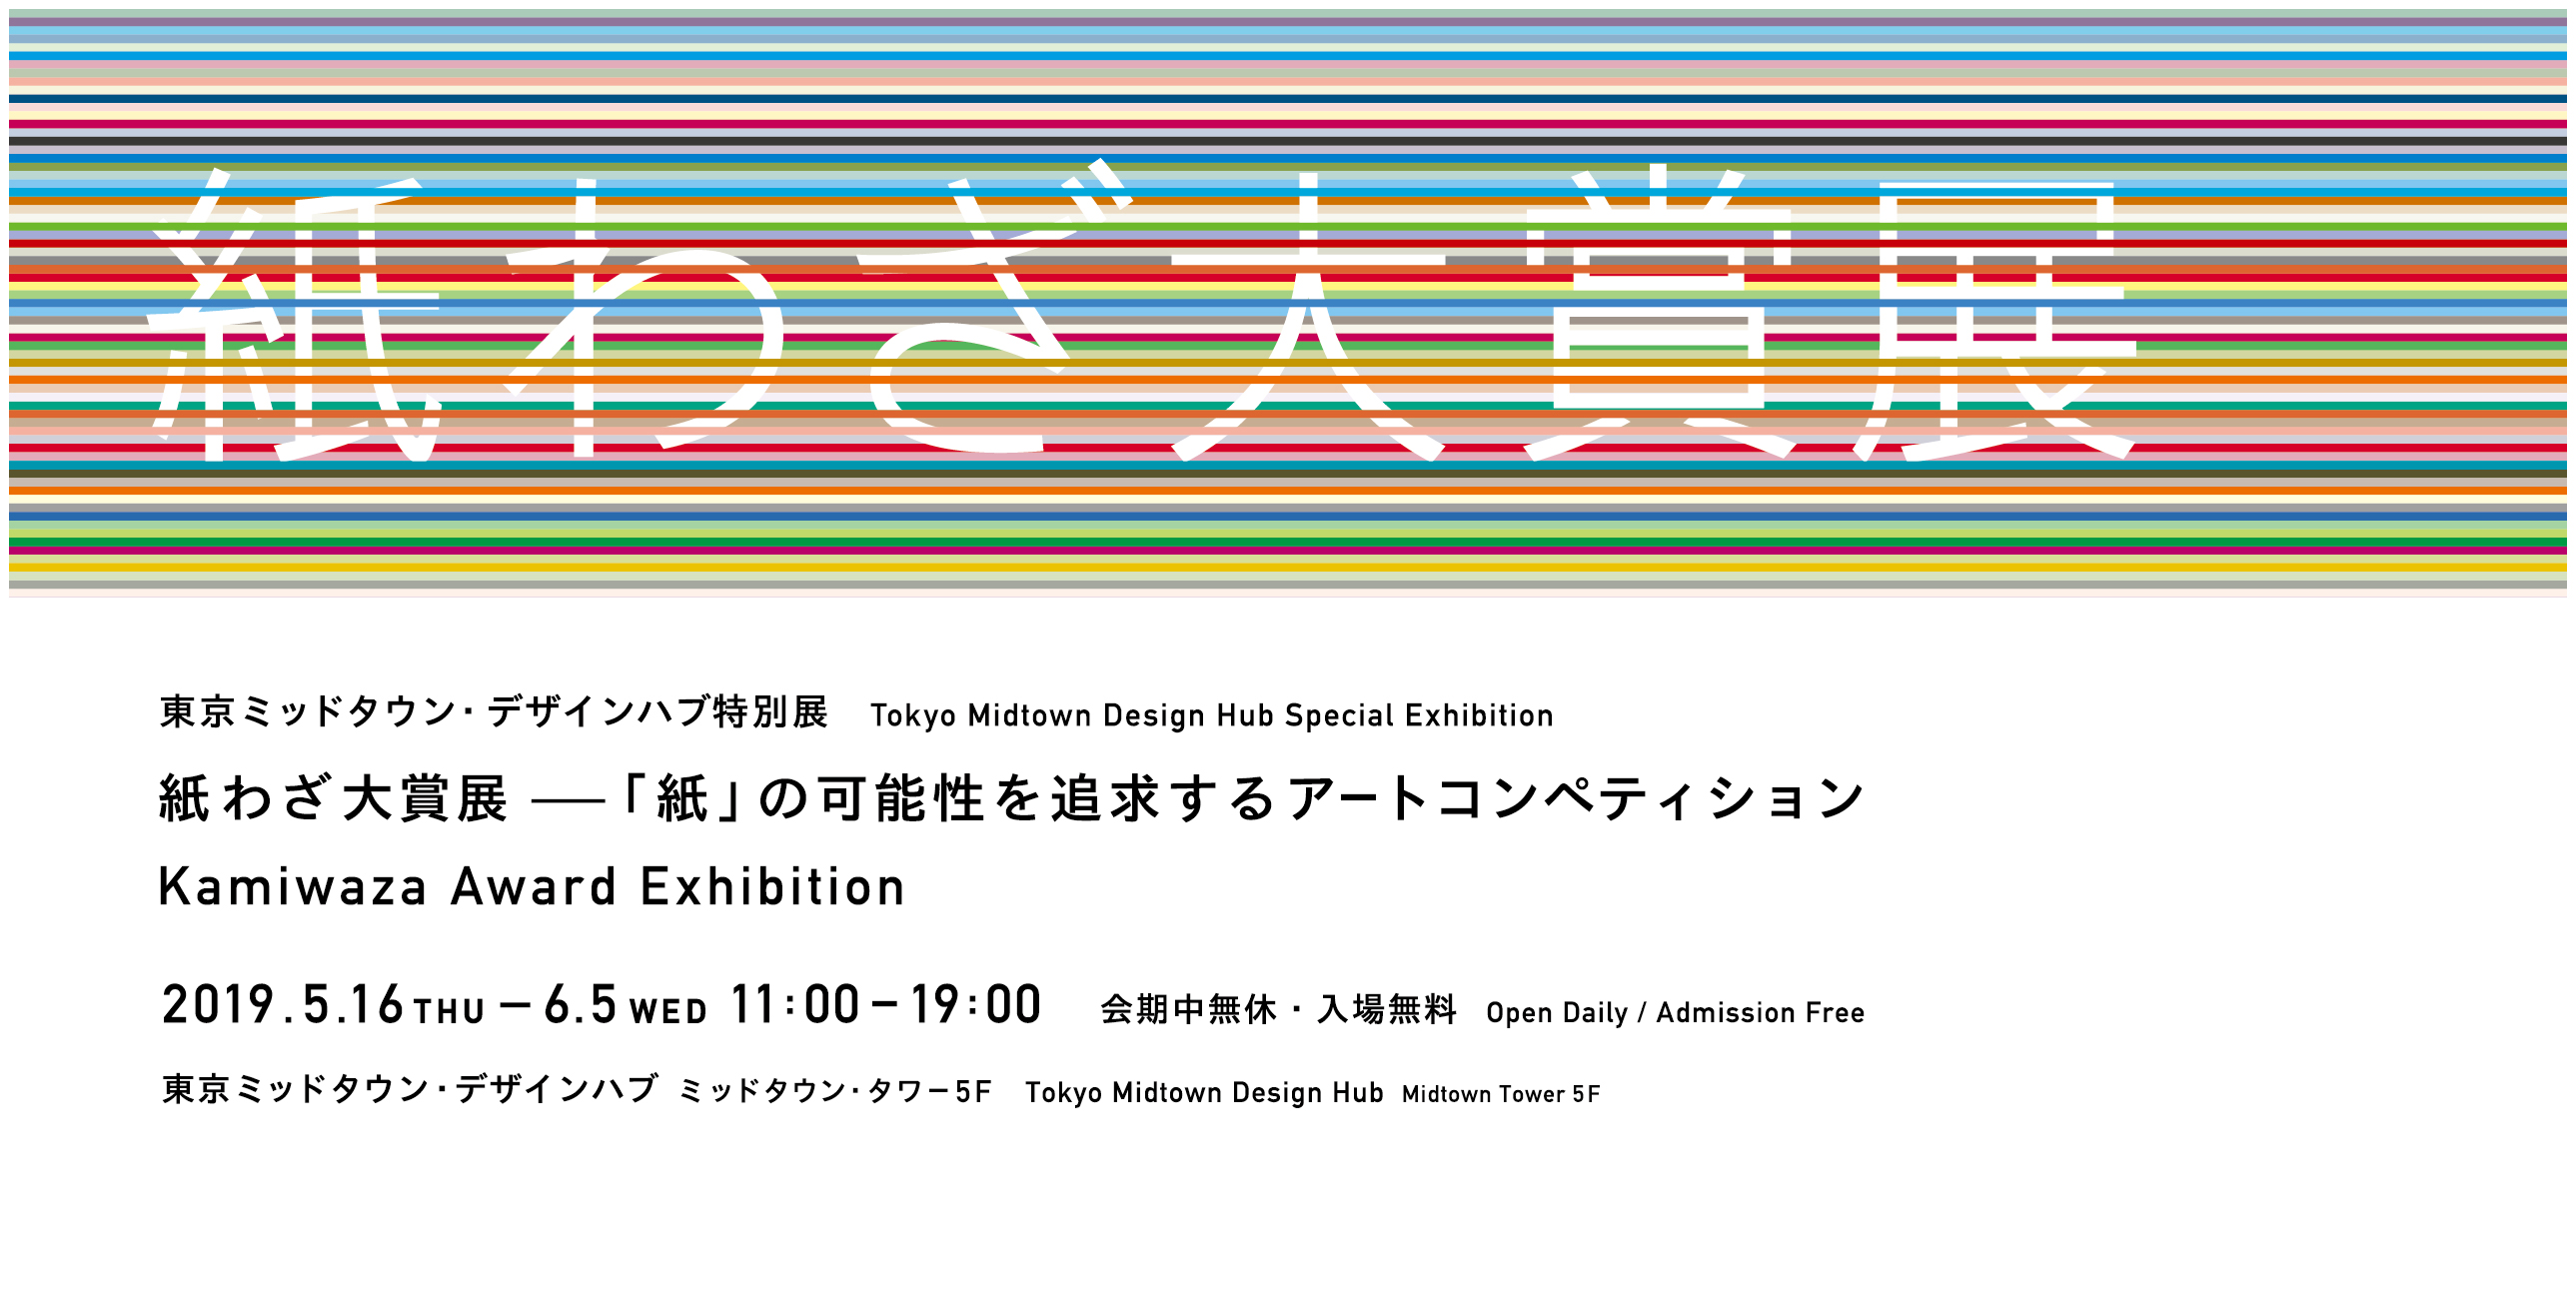 Kamiwaza Award Exhibition